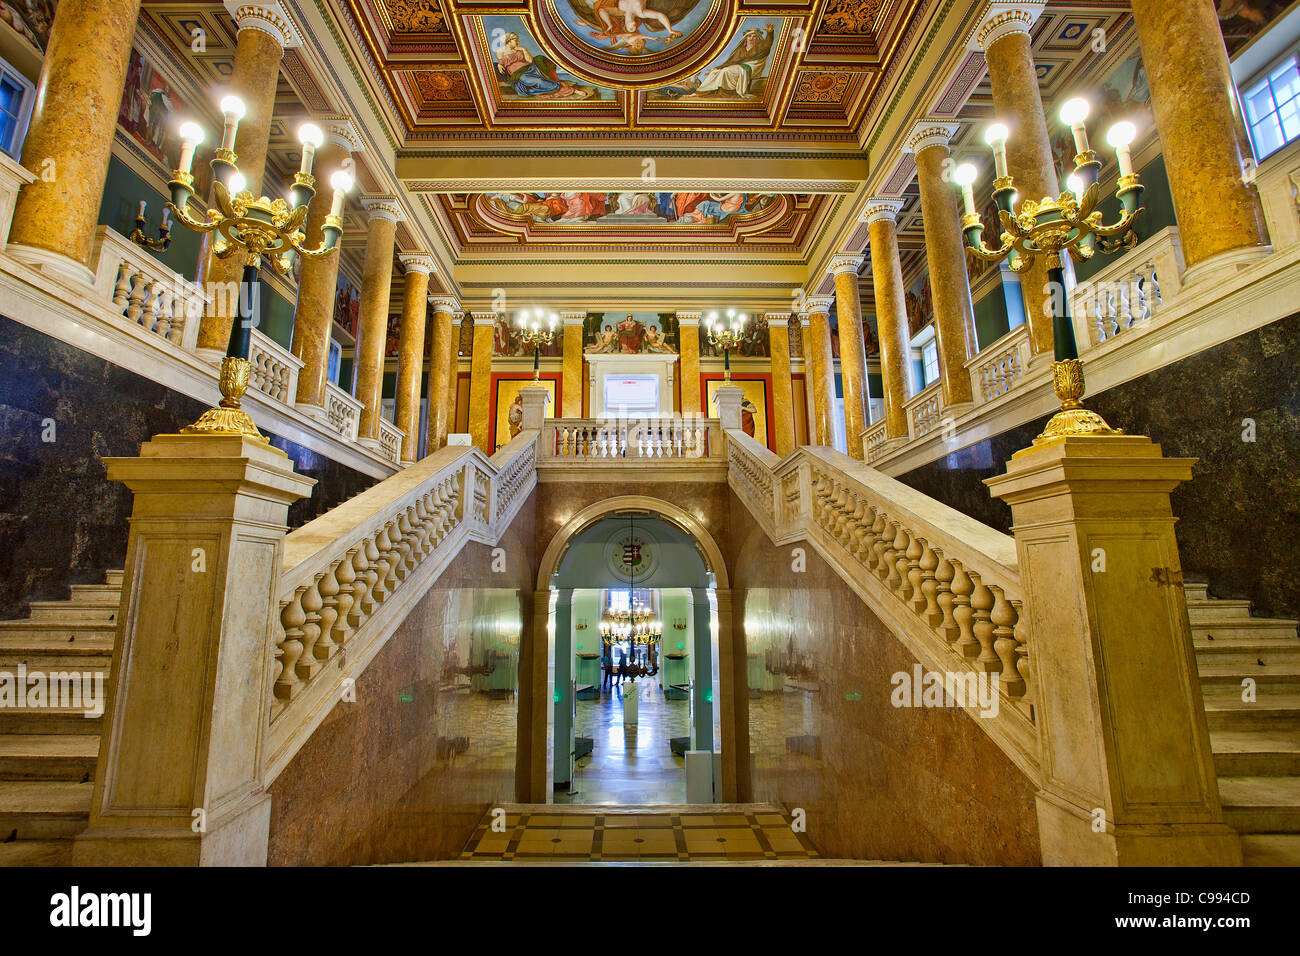 Budapest, Hungarian National Museum, The Stairway - Stock Image